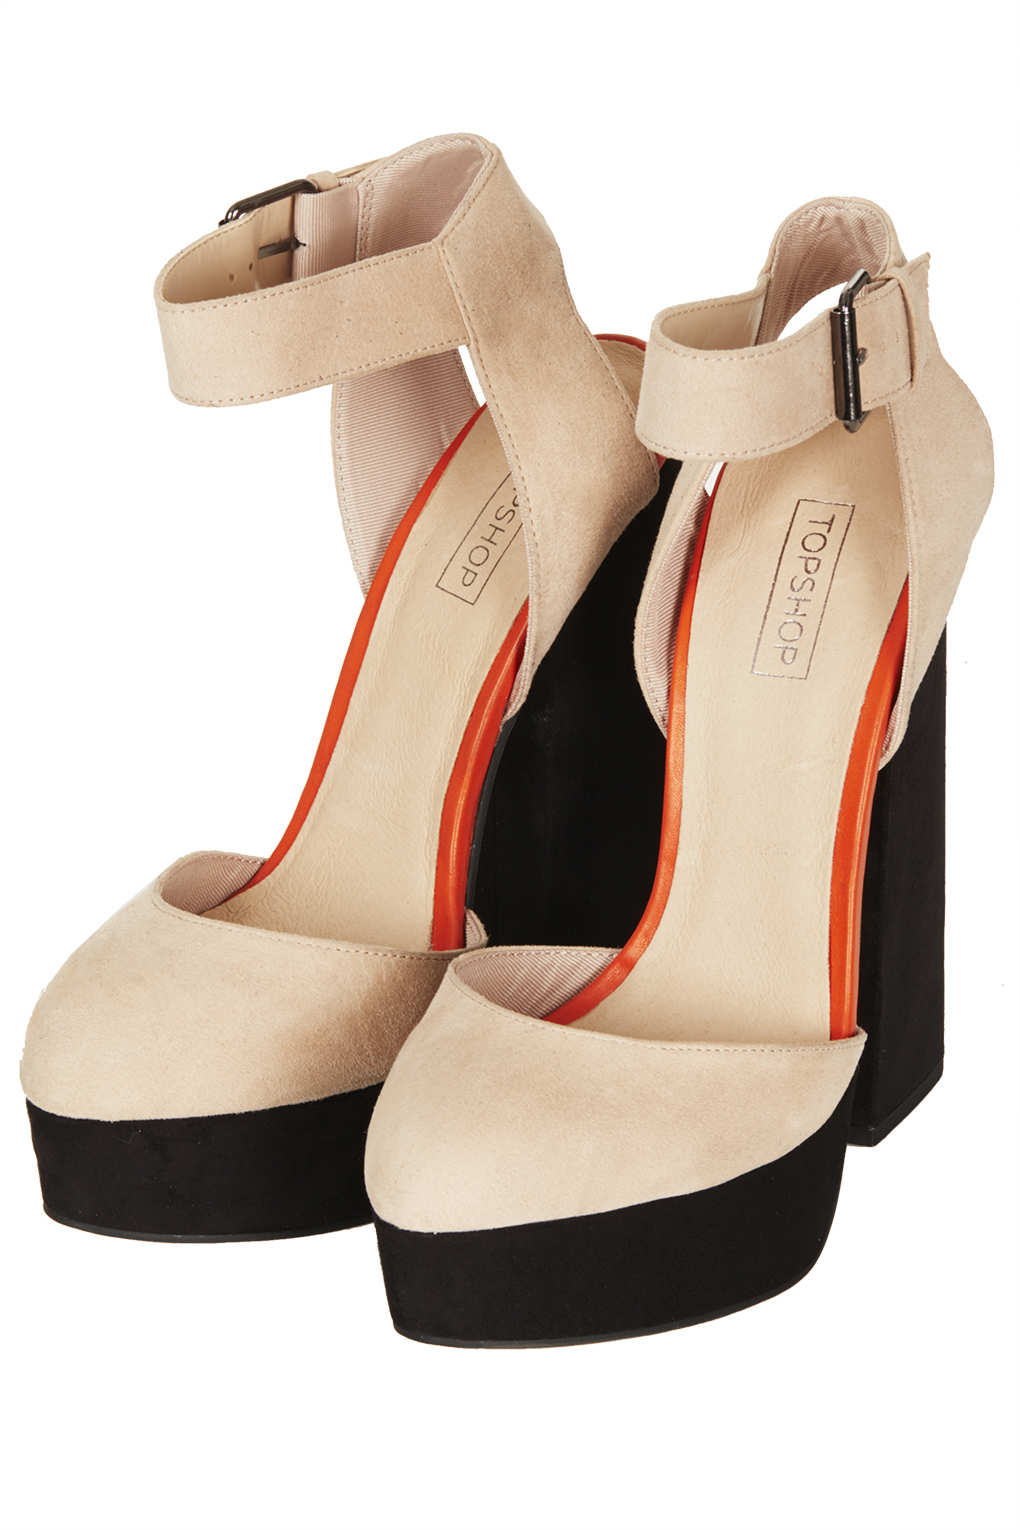 d0f8de641422 Lyst - TOPSHOP Shelly Cut-out Back Platforms in Natural